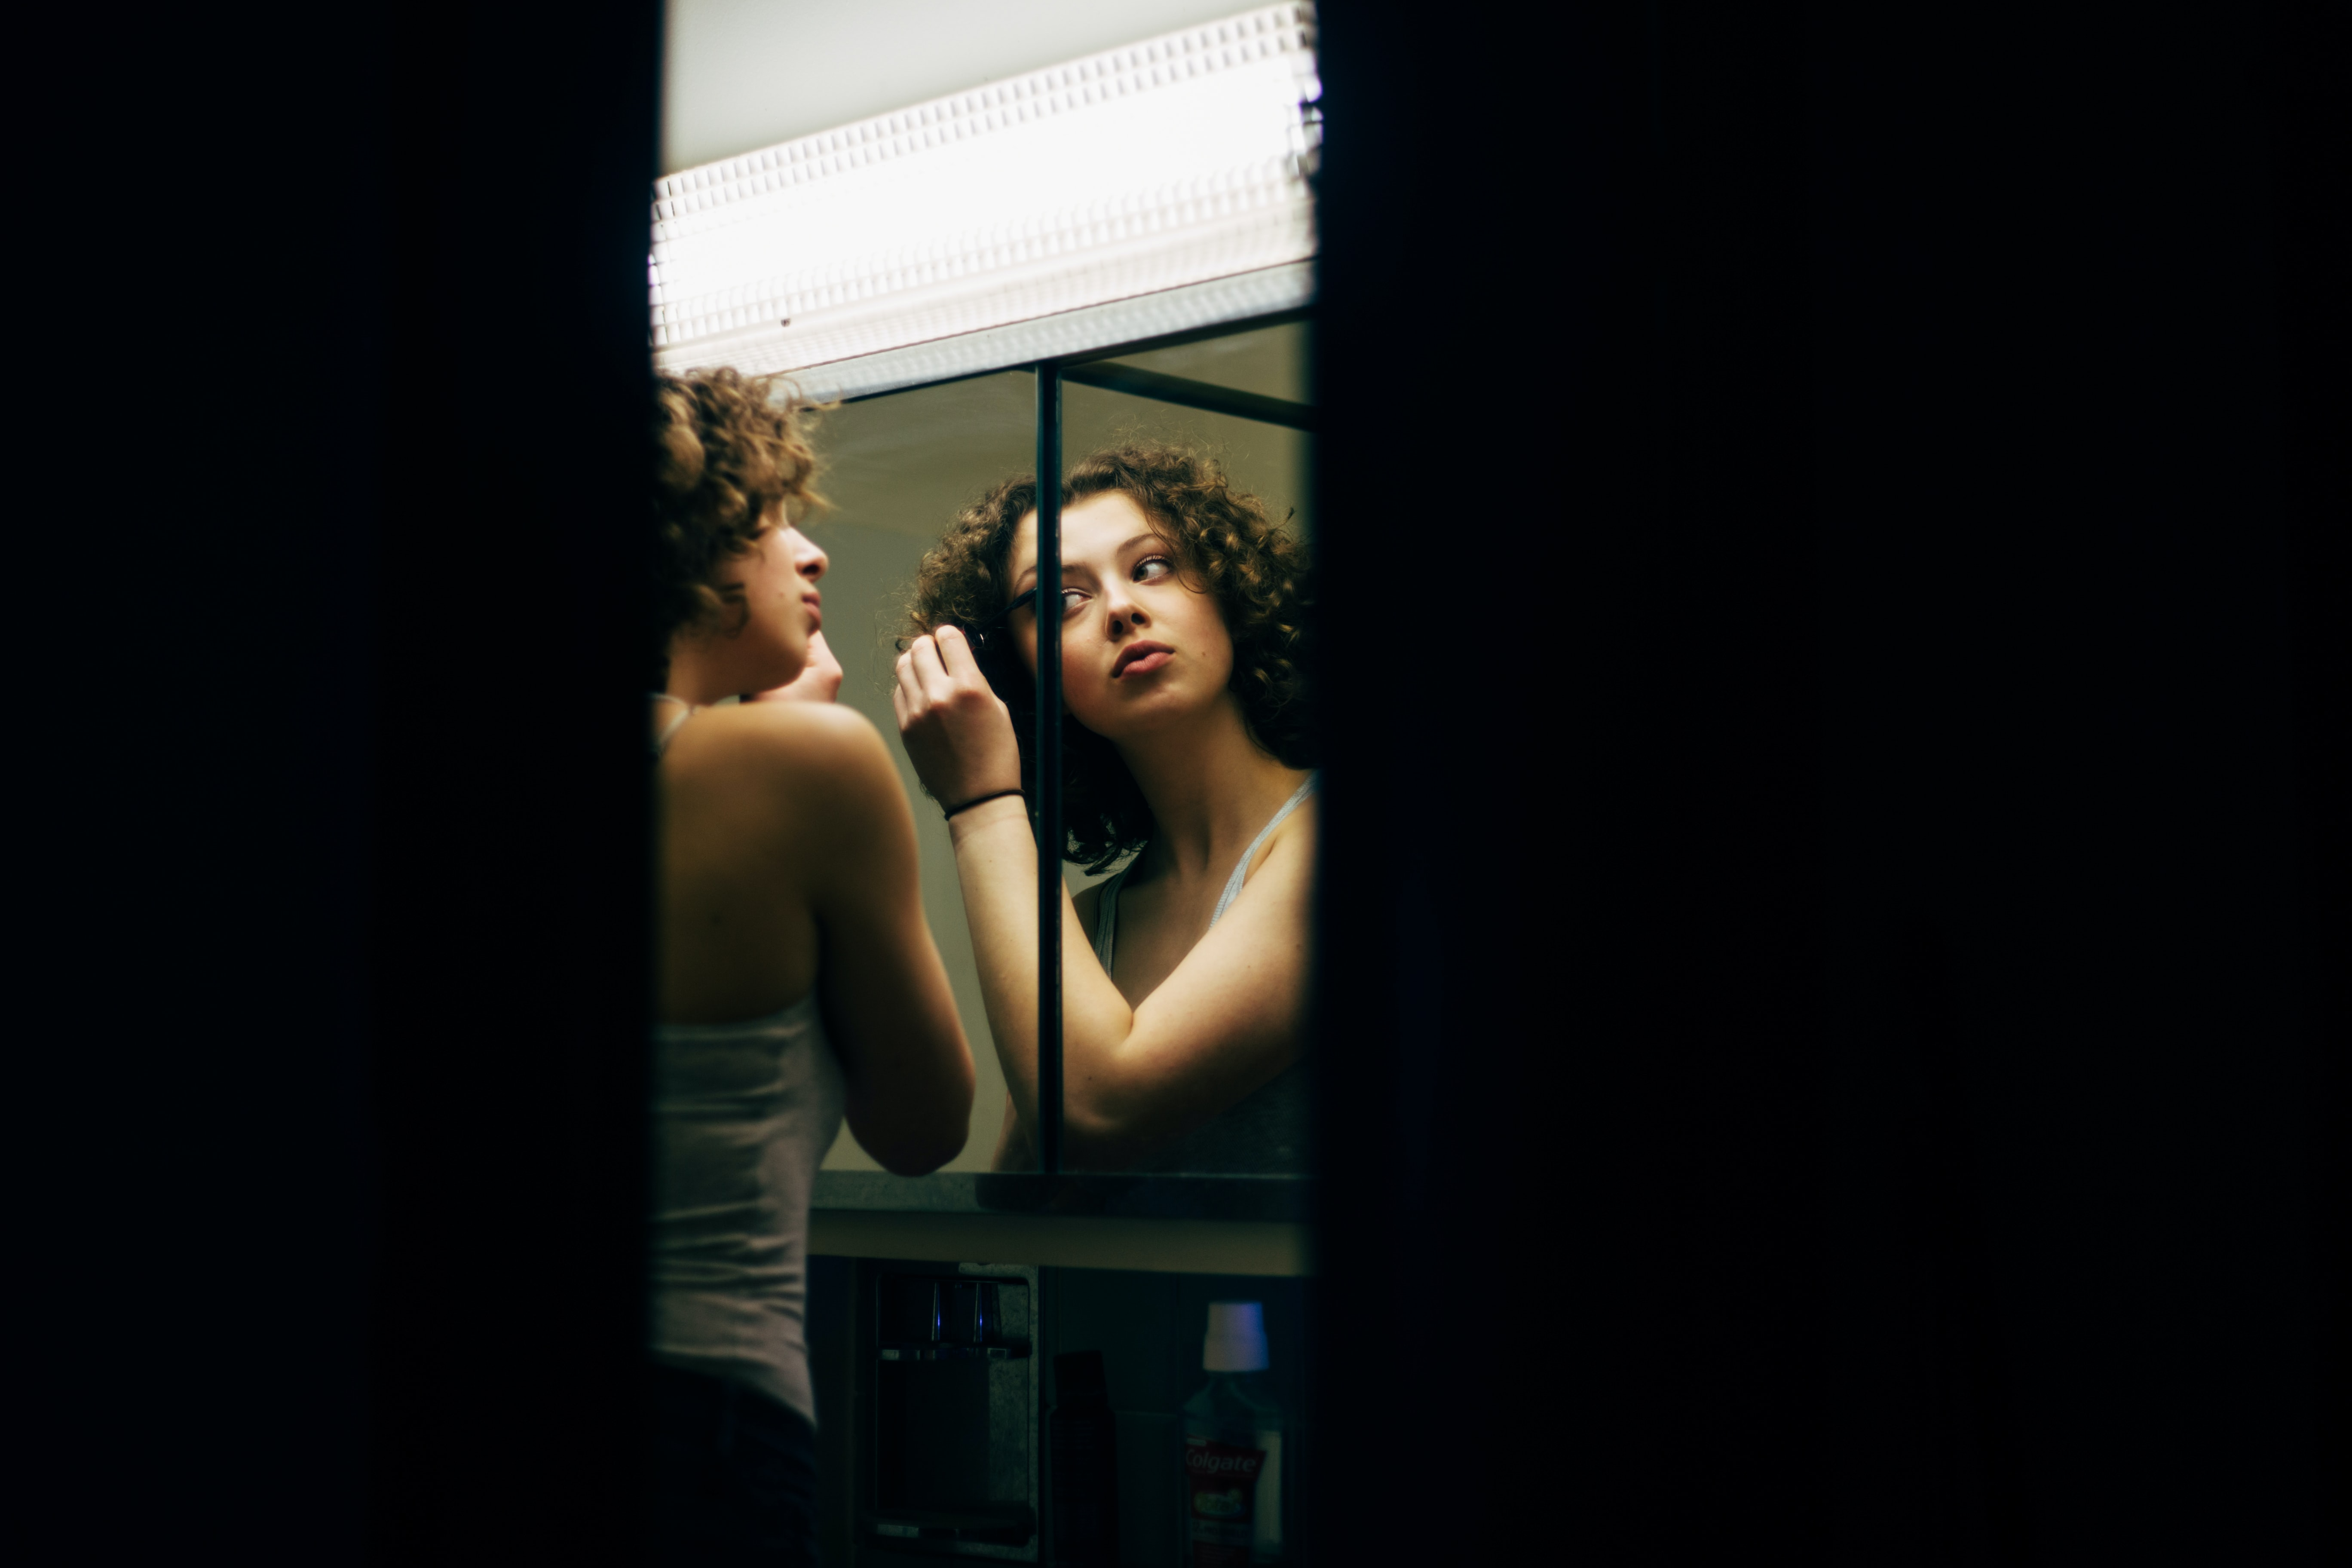 girl-in-mirror-reflection